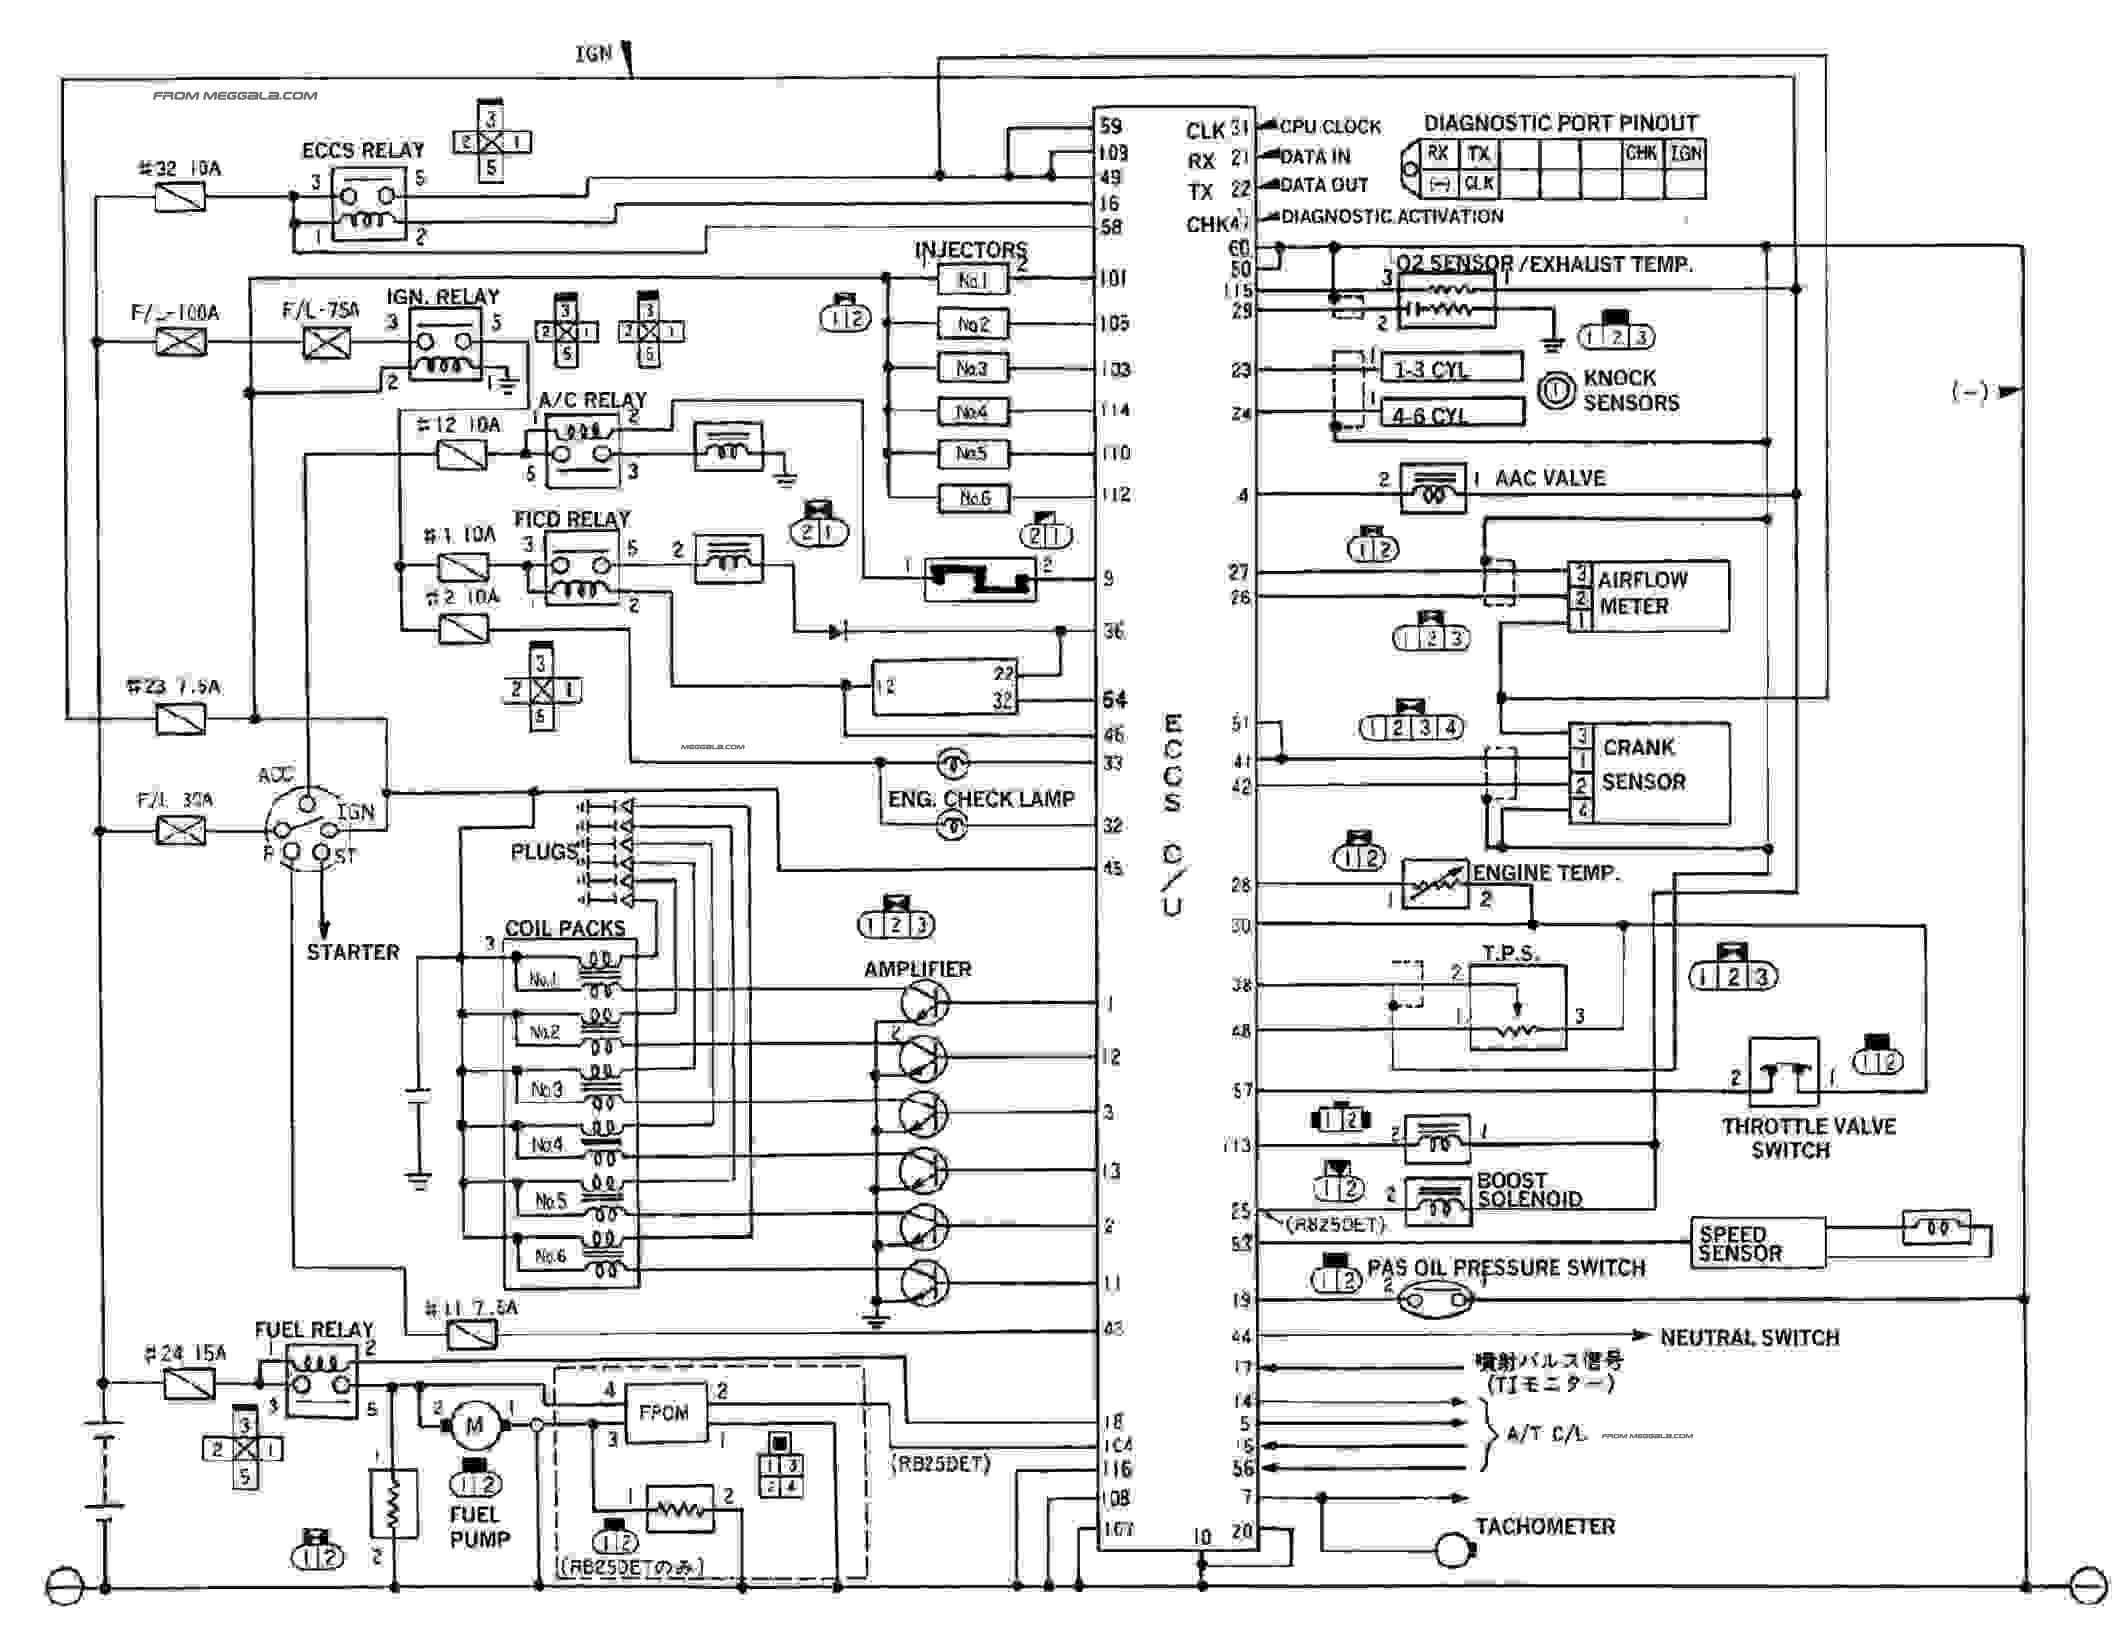 Out Diagram Pin Ecu Mec70 Wiring Master Blogs Data Switch Vga Rb20 Today Rh 35 Unimath De All Pinouts Micro Usb